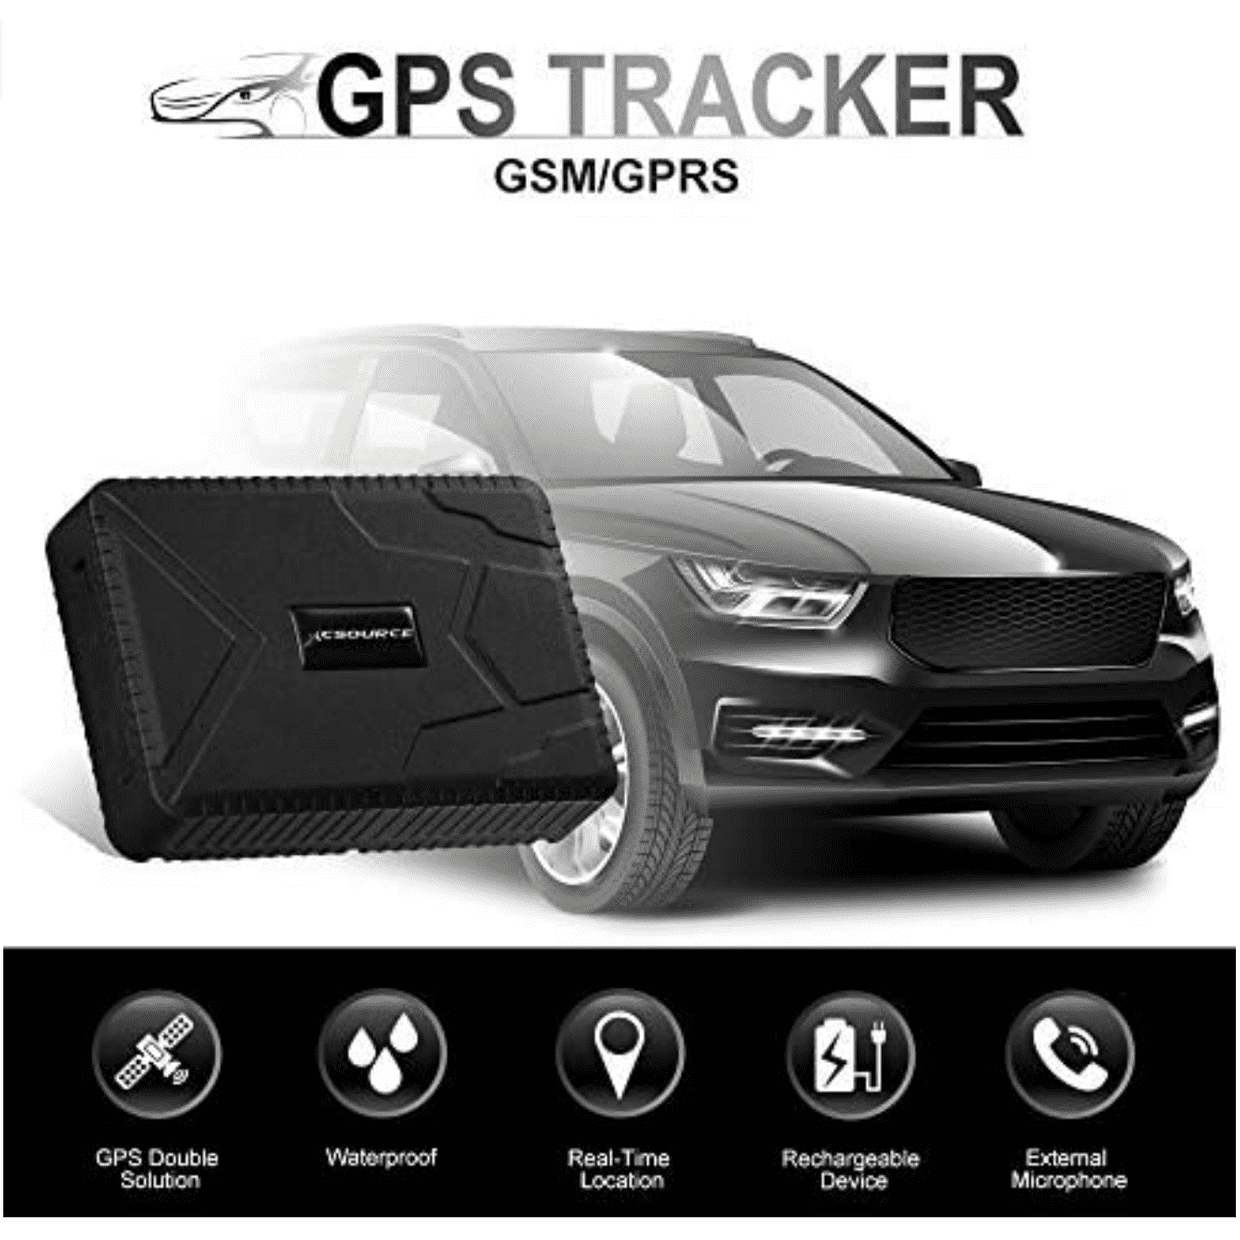 Top 9 best GPS tracker for cars review and Buyer's guide cover image